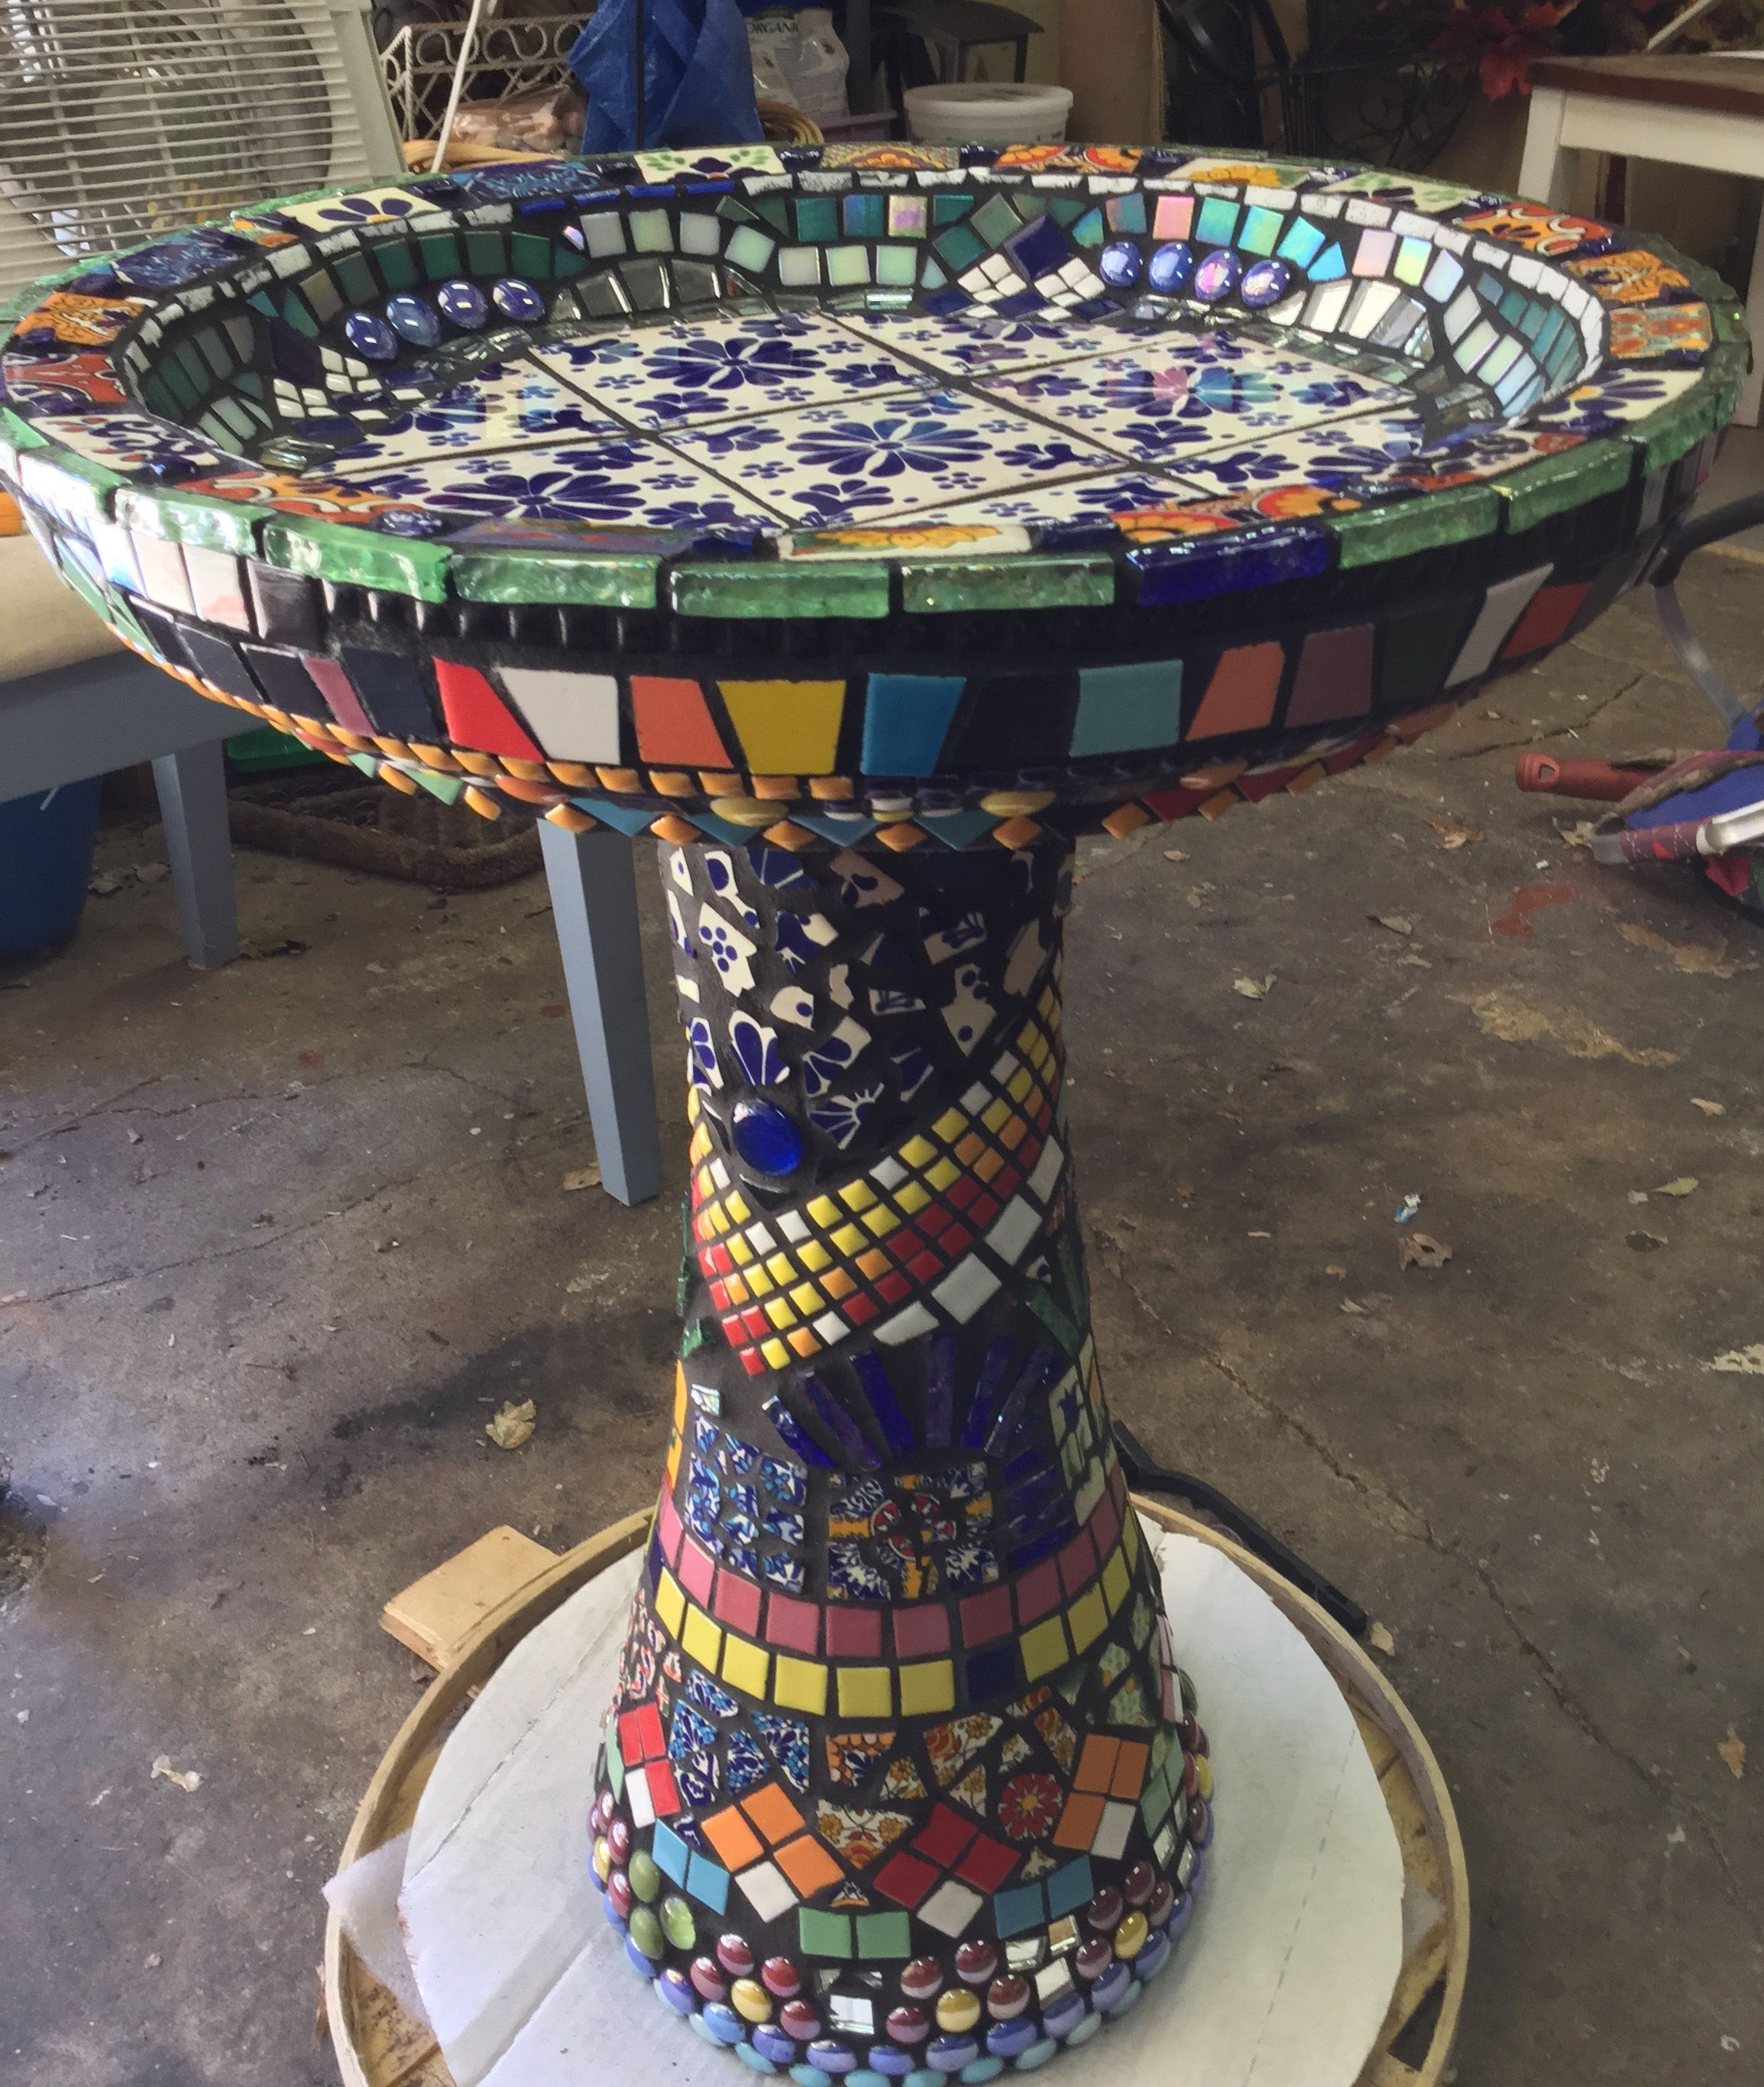 Mosaic art outdoor mosaic mosaic birdbath talavera tile mexican mosaic birdbath with talavera mexican and ceramic tile finished with black grout my first attempt at mosaic art was given an old cement birdbath that i dailygadgetfo Gallery